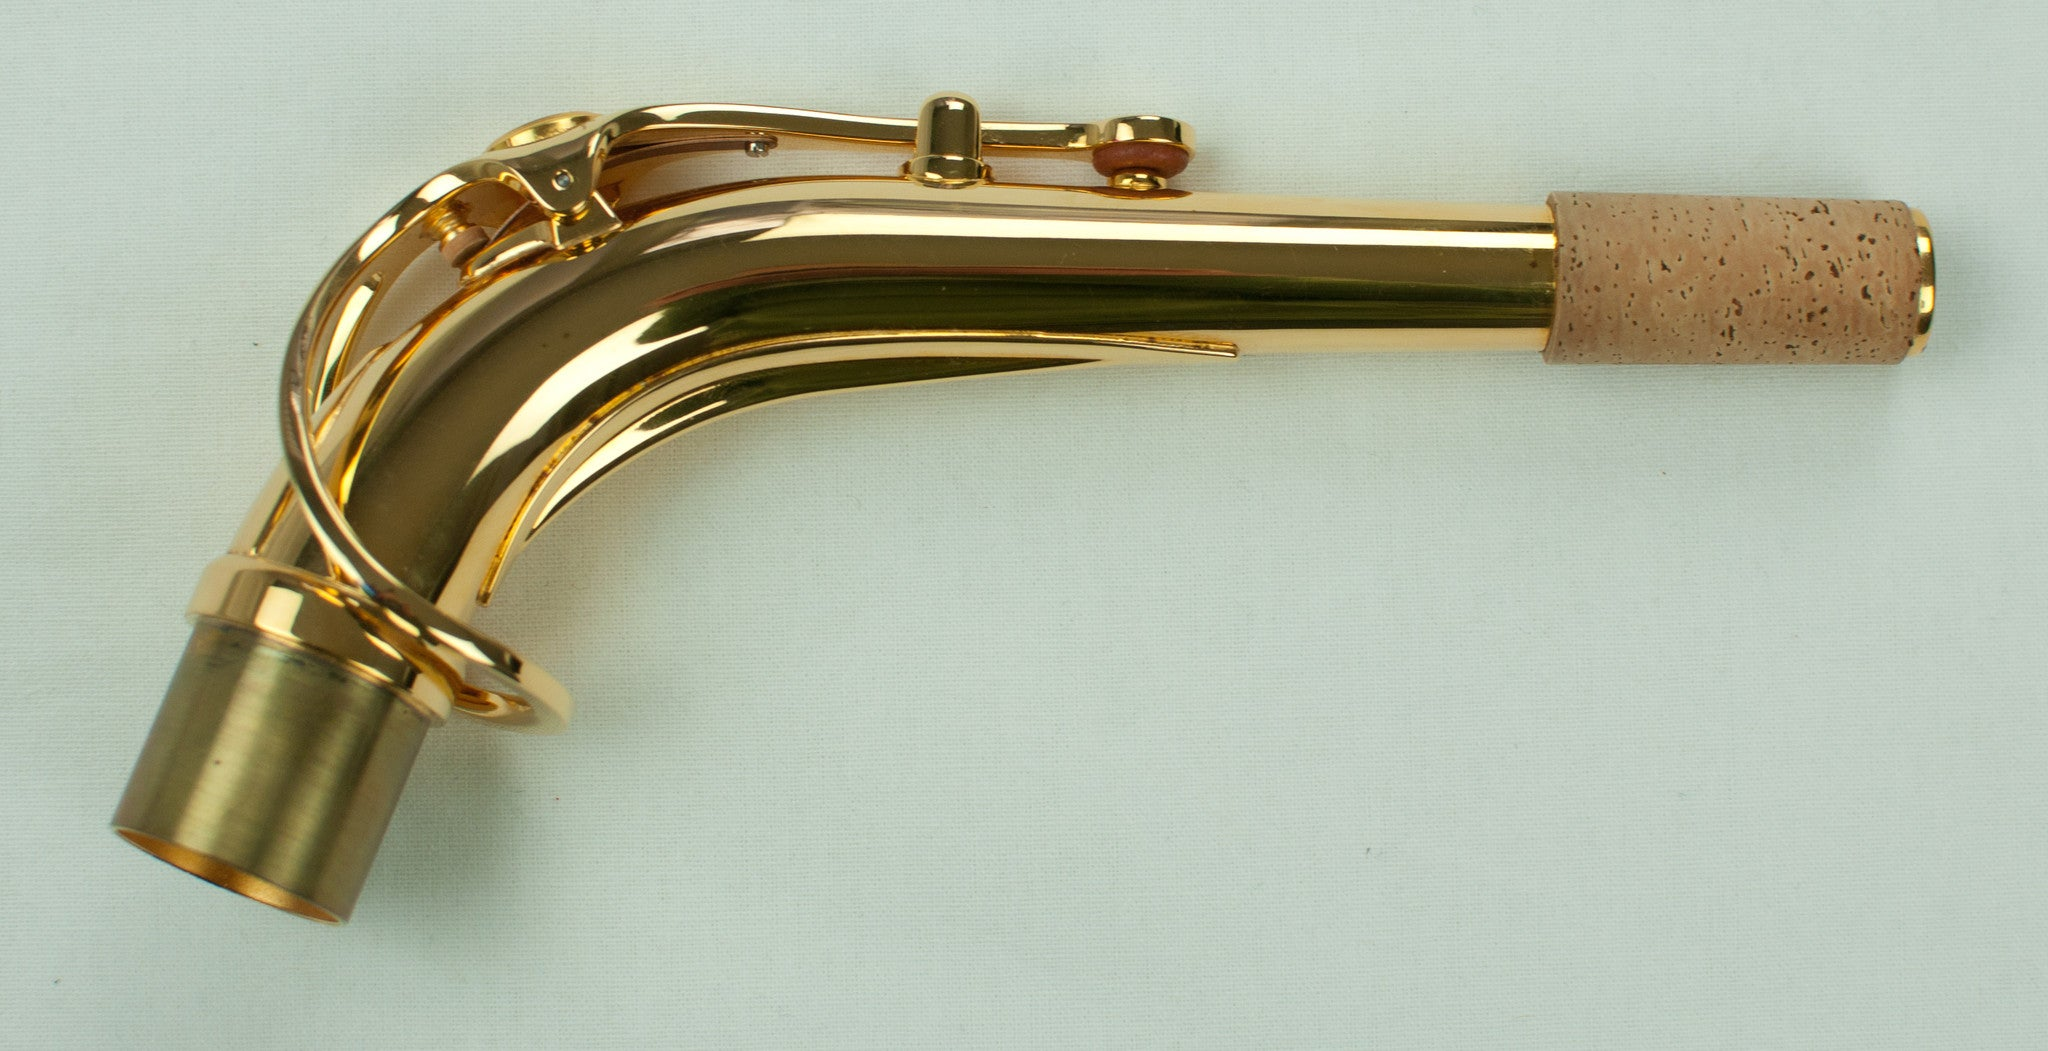 Yamaha G3 Gold Plated Alto Saxophone Neck, Near Mint Condition